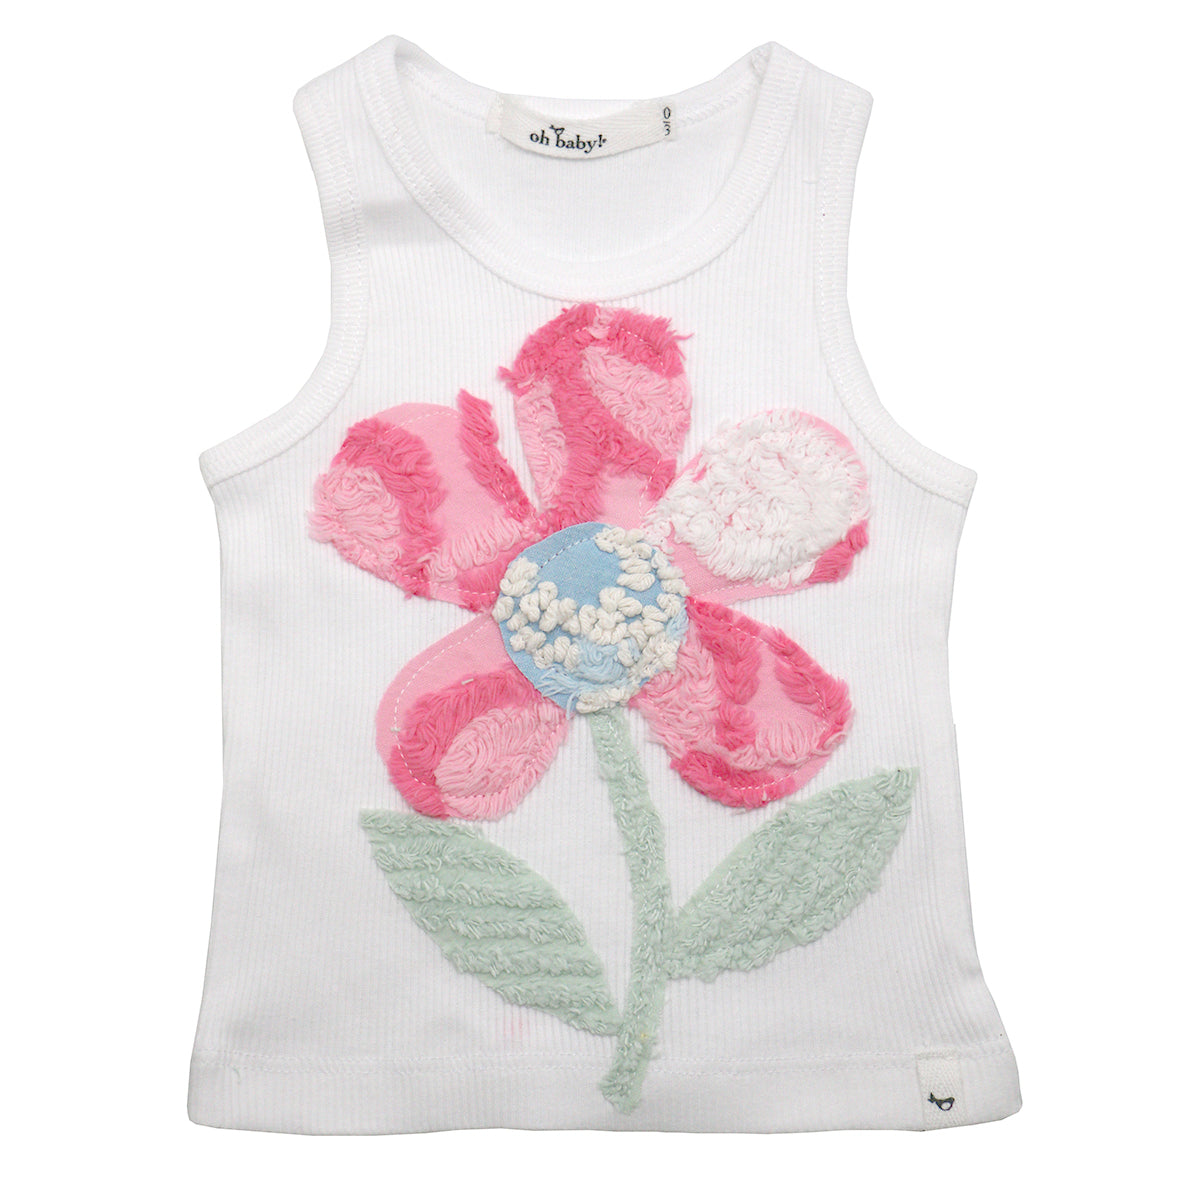 8568a800d oh baby! Anniversary Vintage Flower Tank Top - Size 0-3 Months